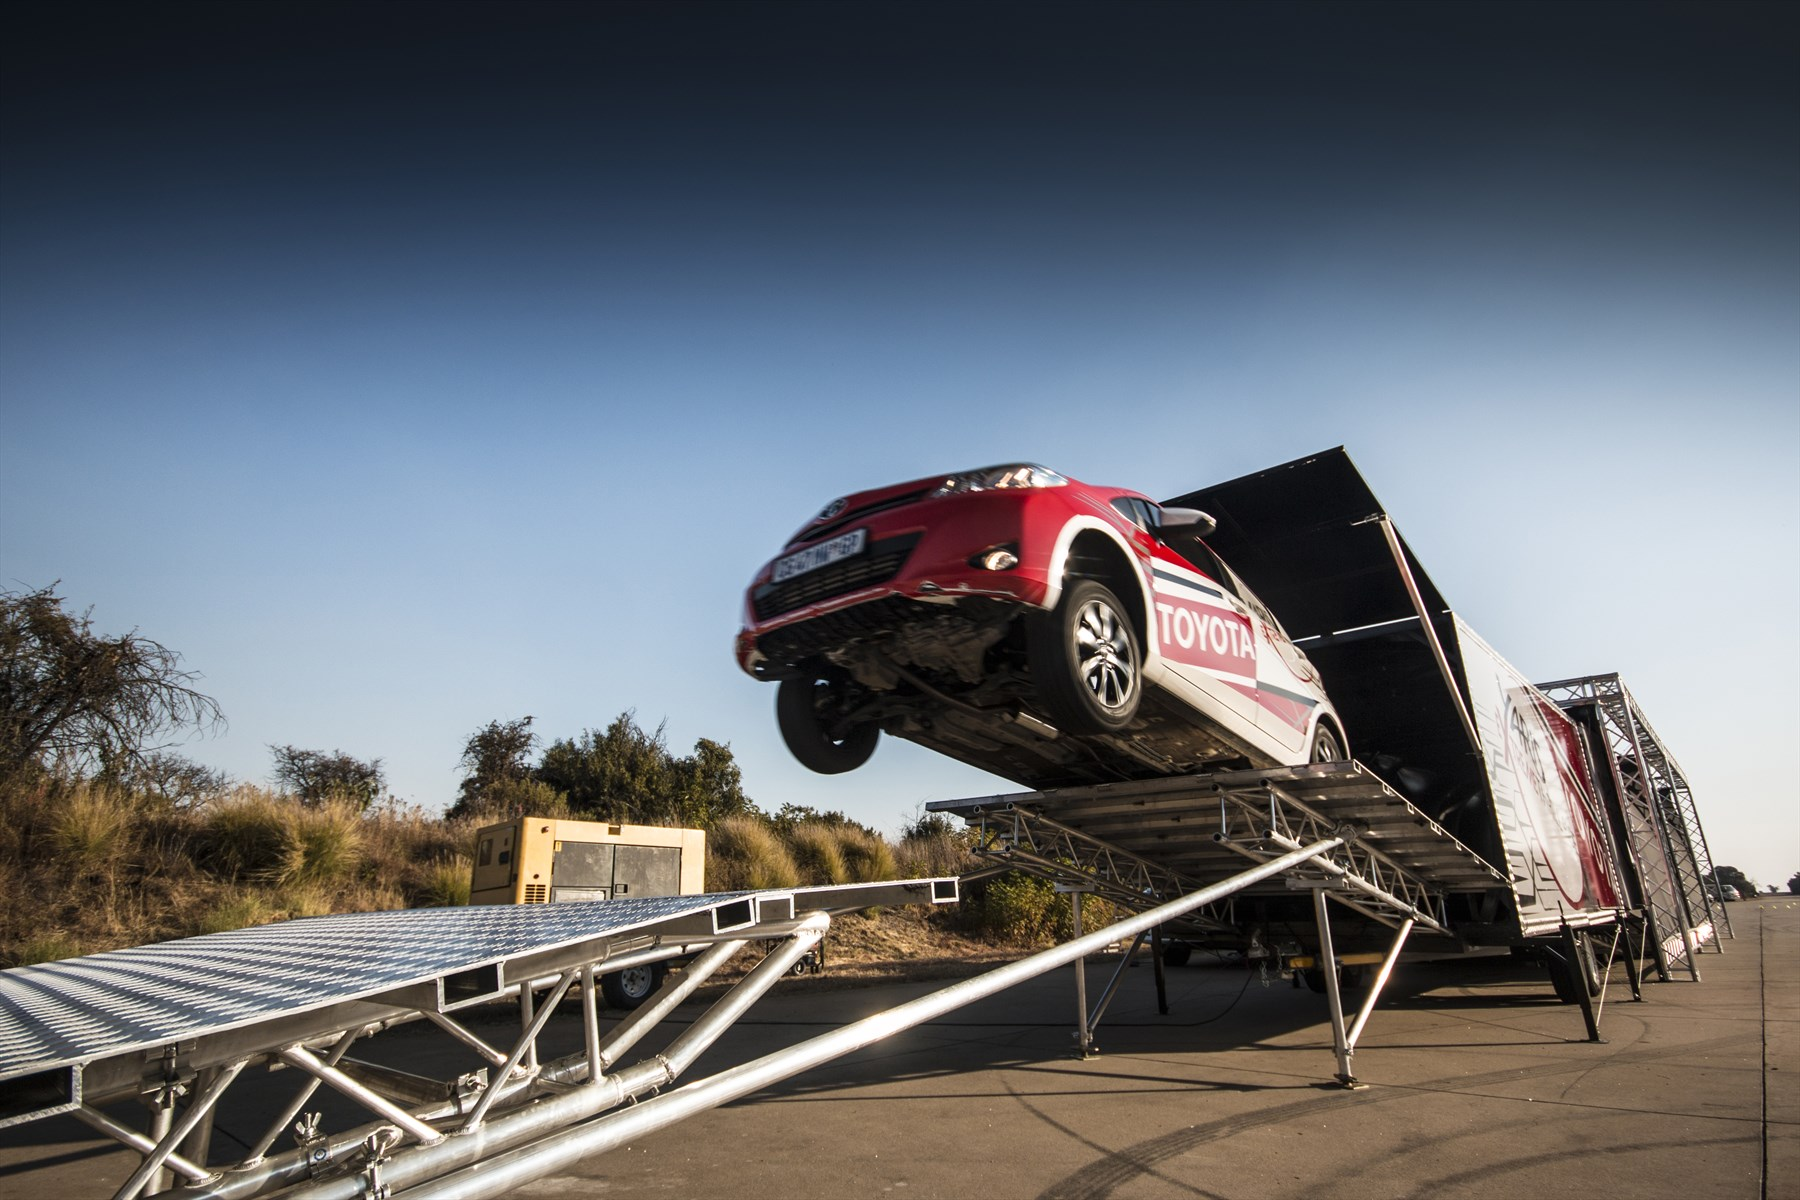 X-Fighters meets Extreme Yaris: Latest News